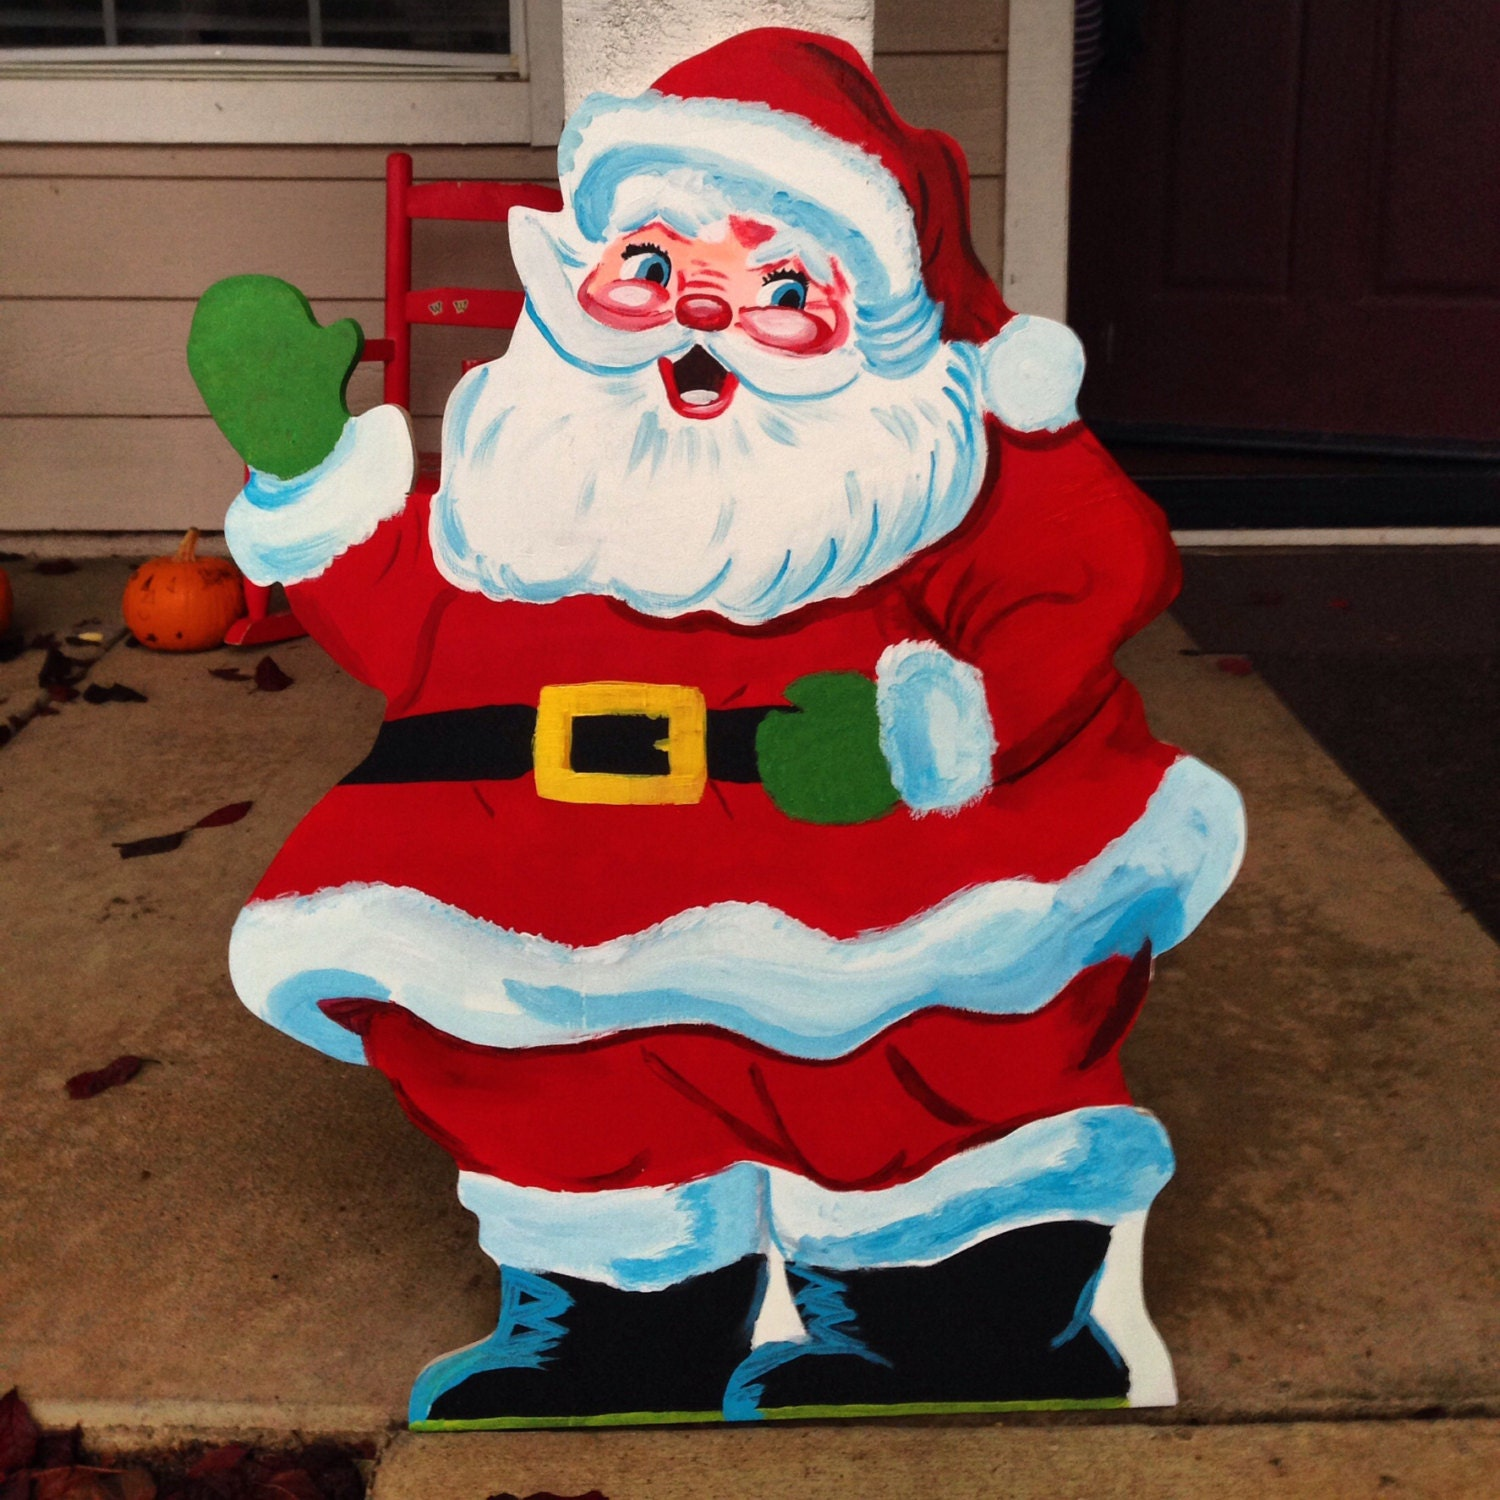 Wooden halloween yard decorations - Santa Claus Sign Vintage Christmas Old Fashioned Look Christmas Yard Decor Vintage